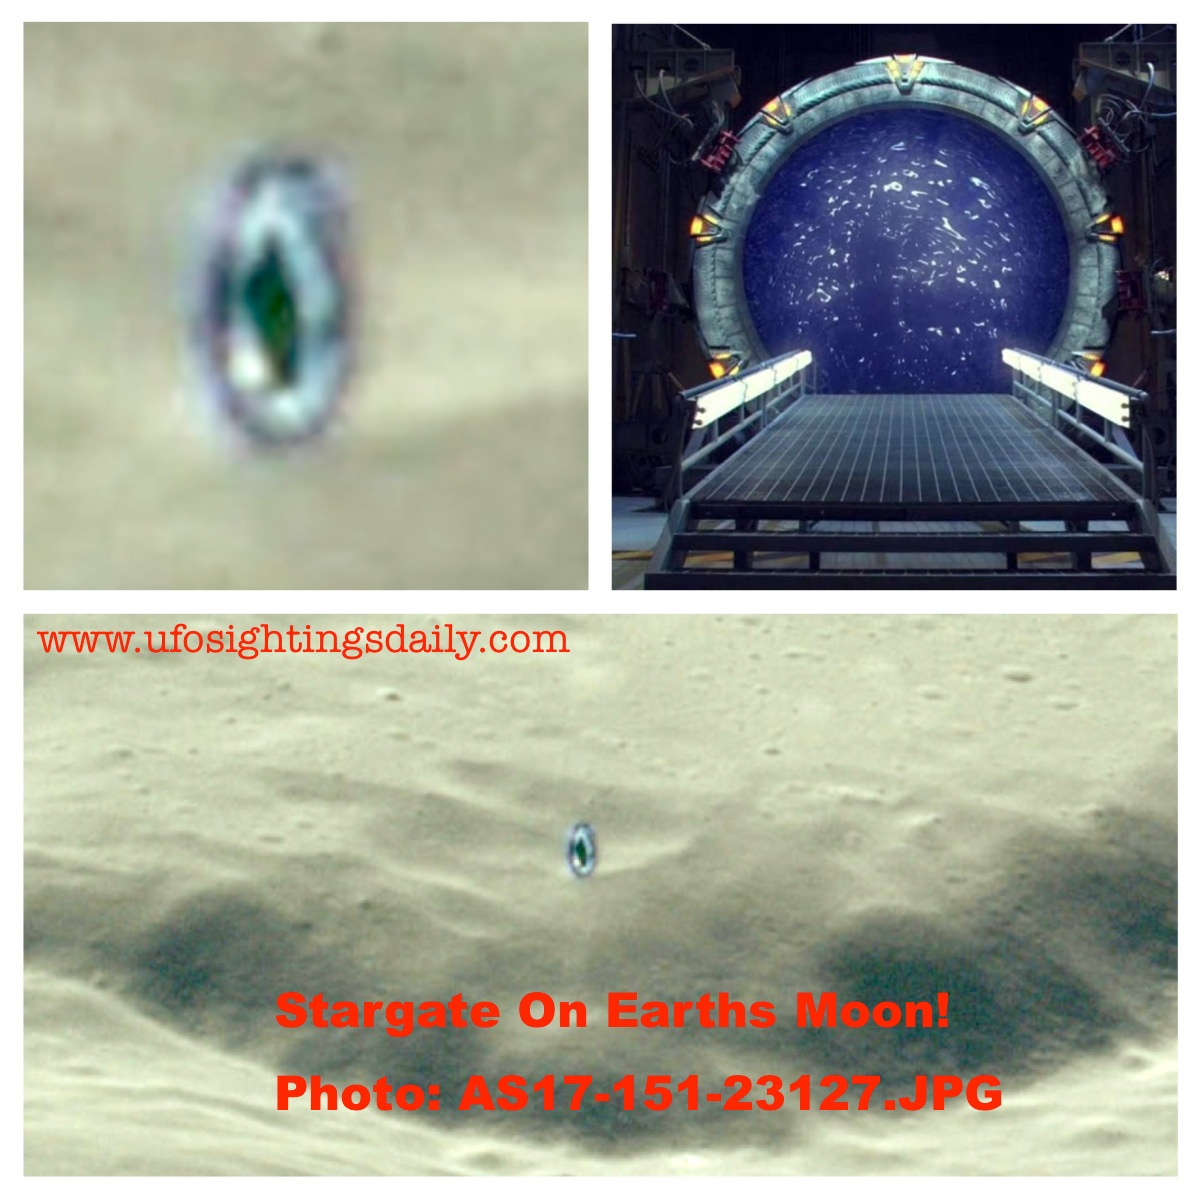 top secret pictures from nasa - photo #38